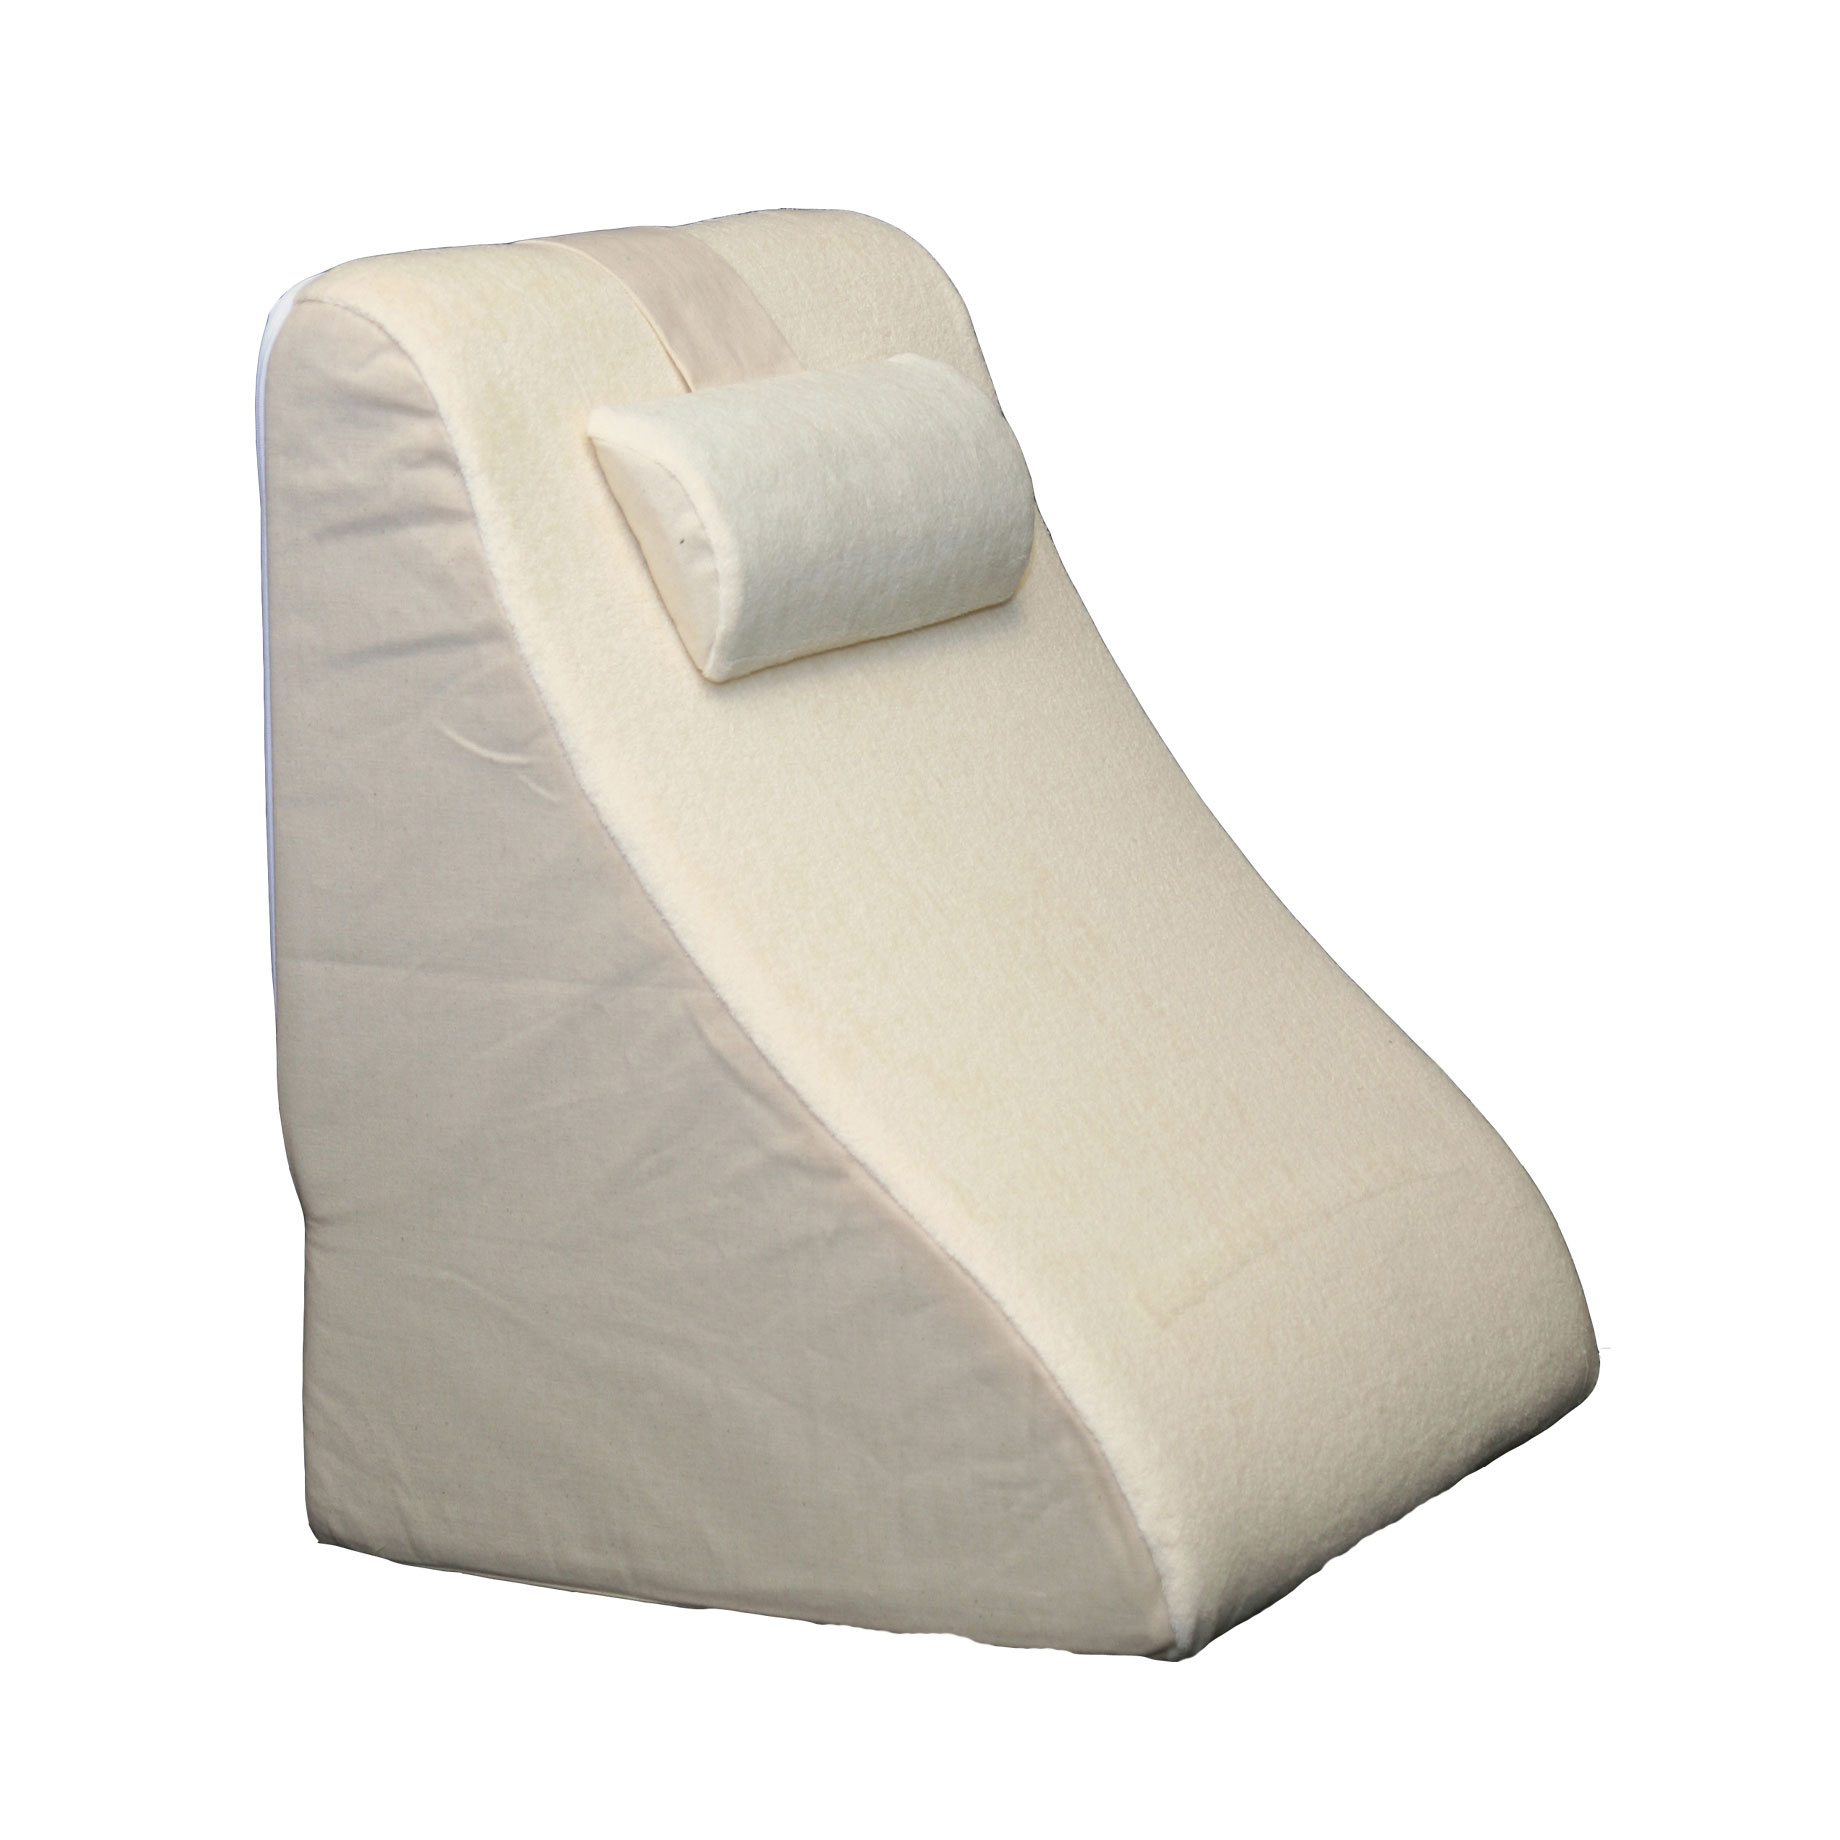 Br2500bw Betterrest Deluxe Memory Foam Bed Wedge Jobri